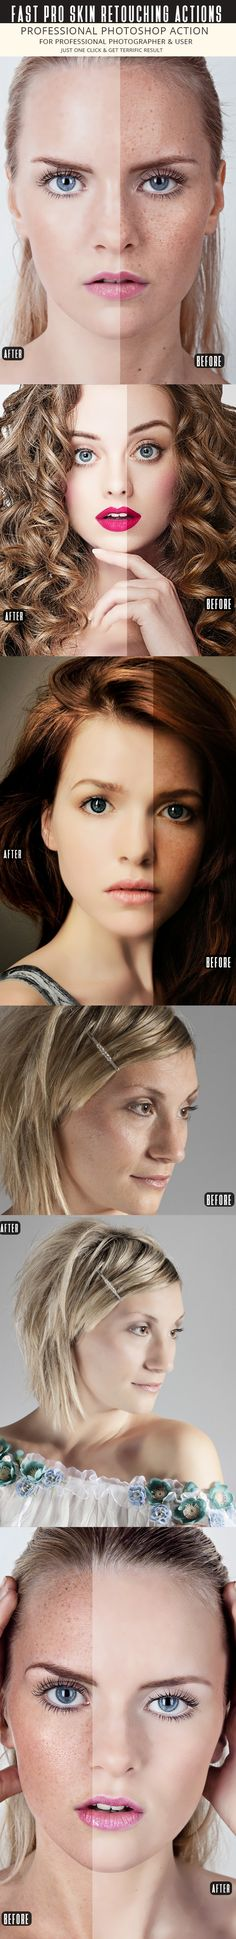 Fast PRO Skin Retouching Actions - Photo Effects Actions Download here: https://graphicriver.net/item/fast-pro-skin-retouching-actions/19909124?ref=classicdesignp